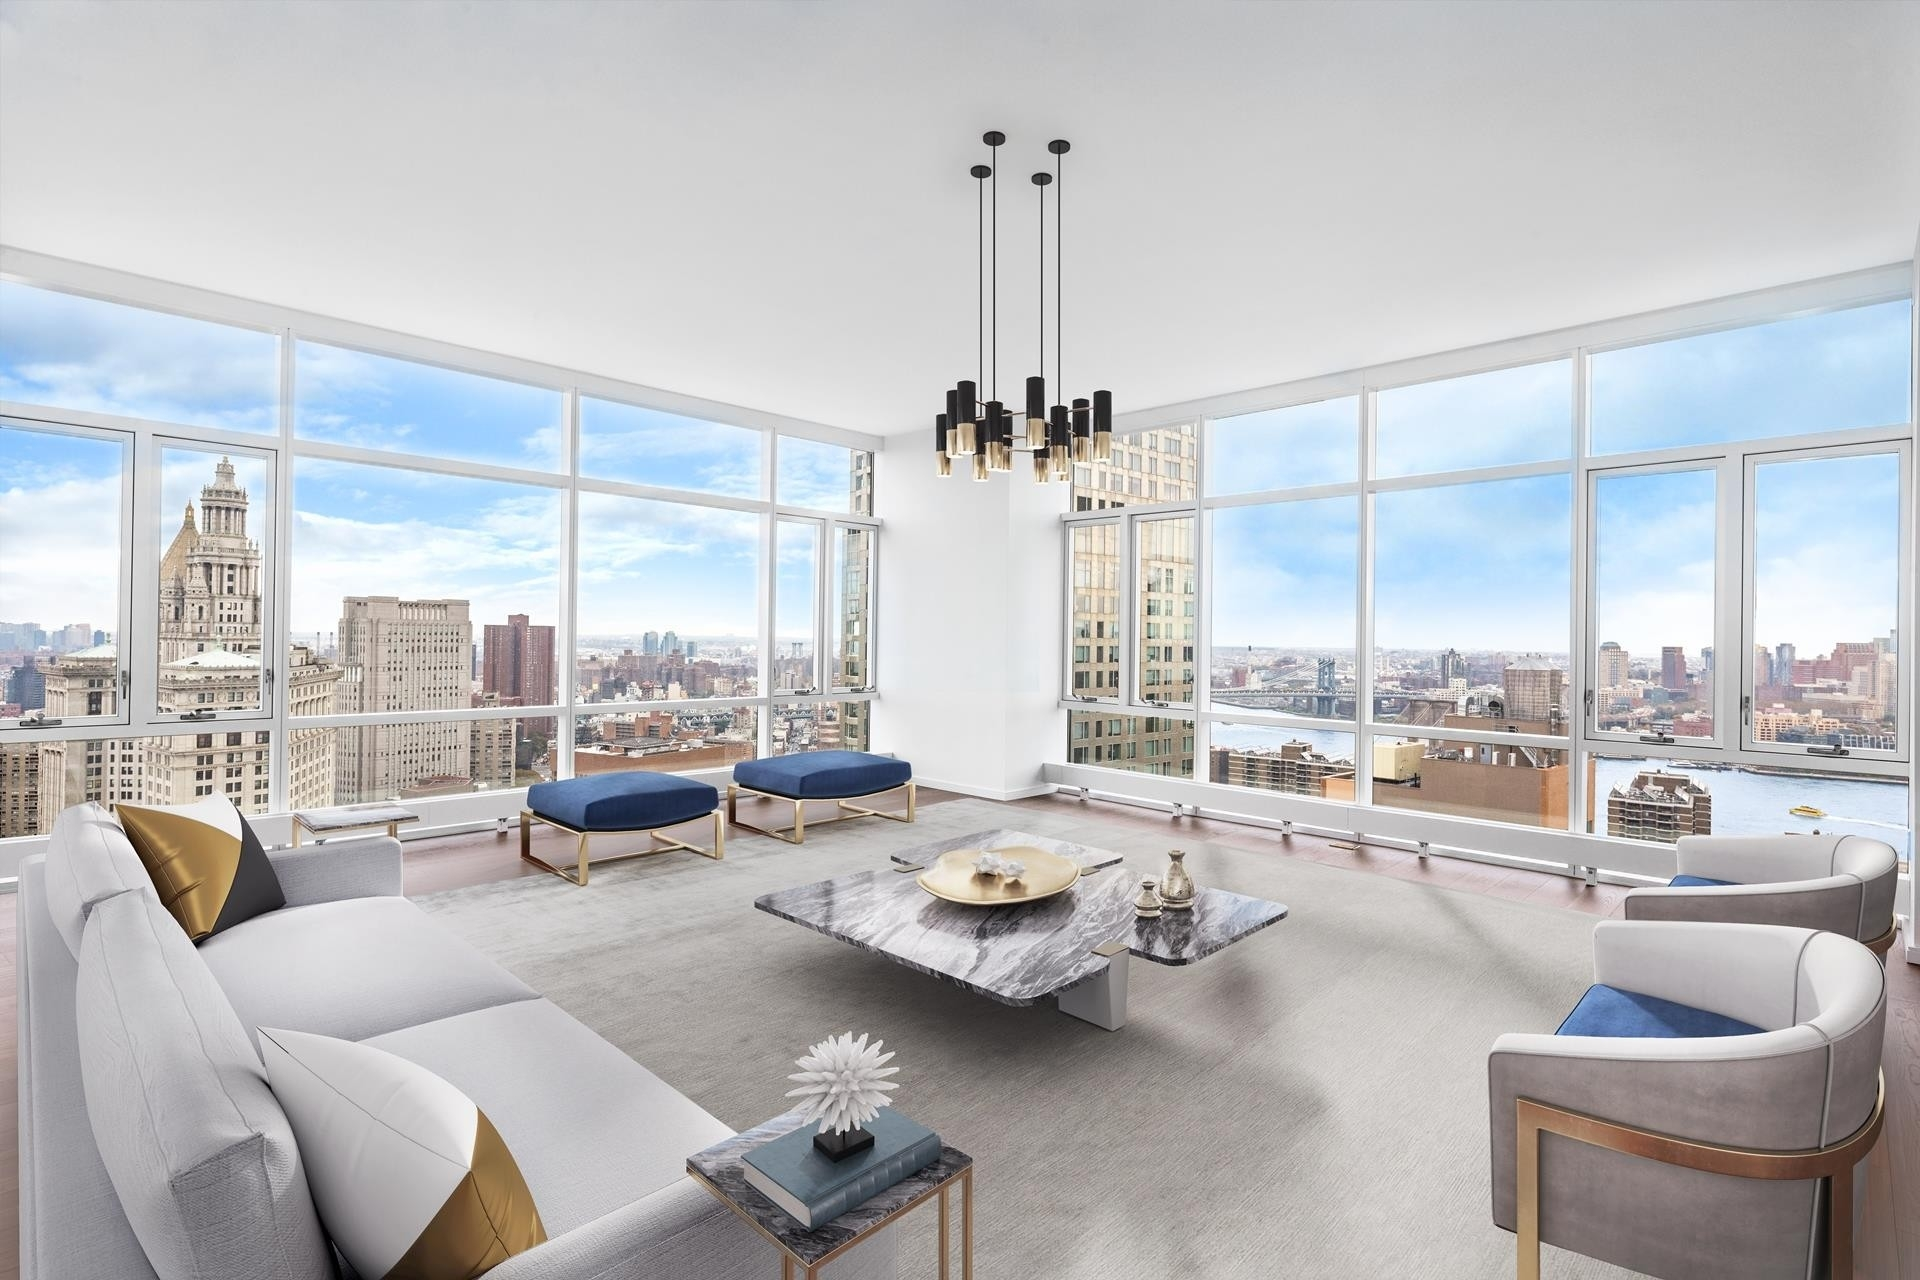 Property at The Beekman Residences, 5 Beekman St, 38AB Financial District, New York, NY 10038